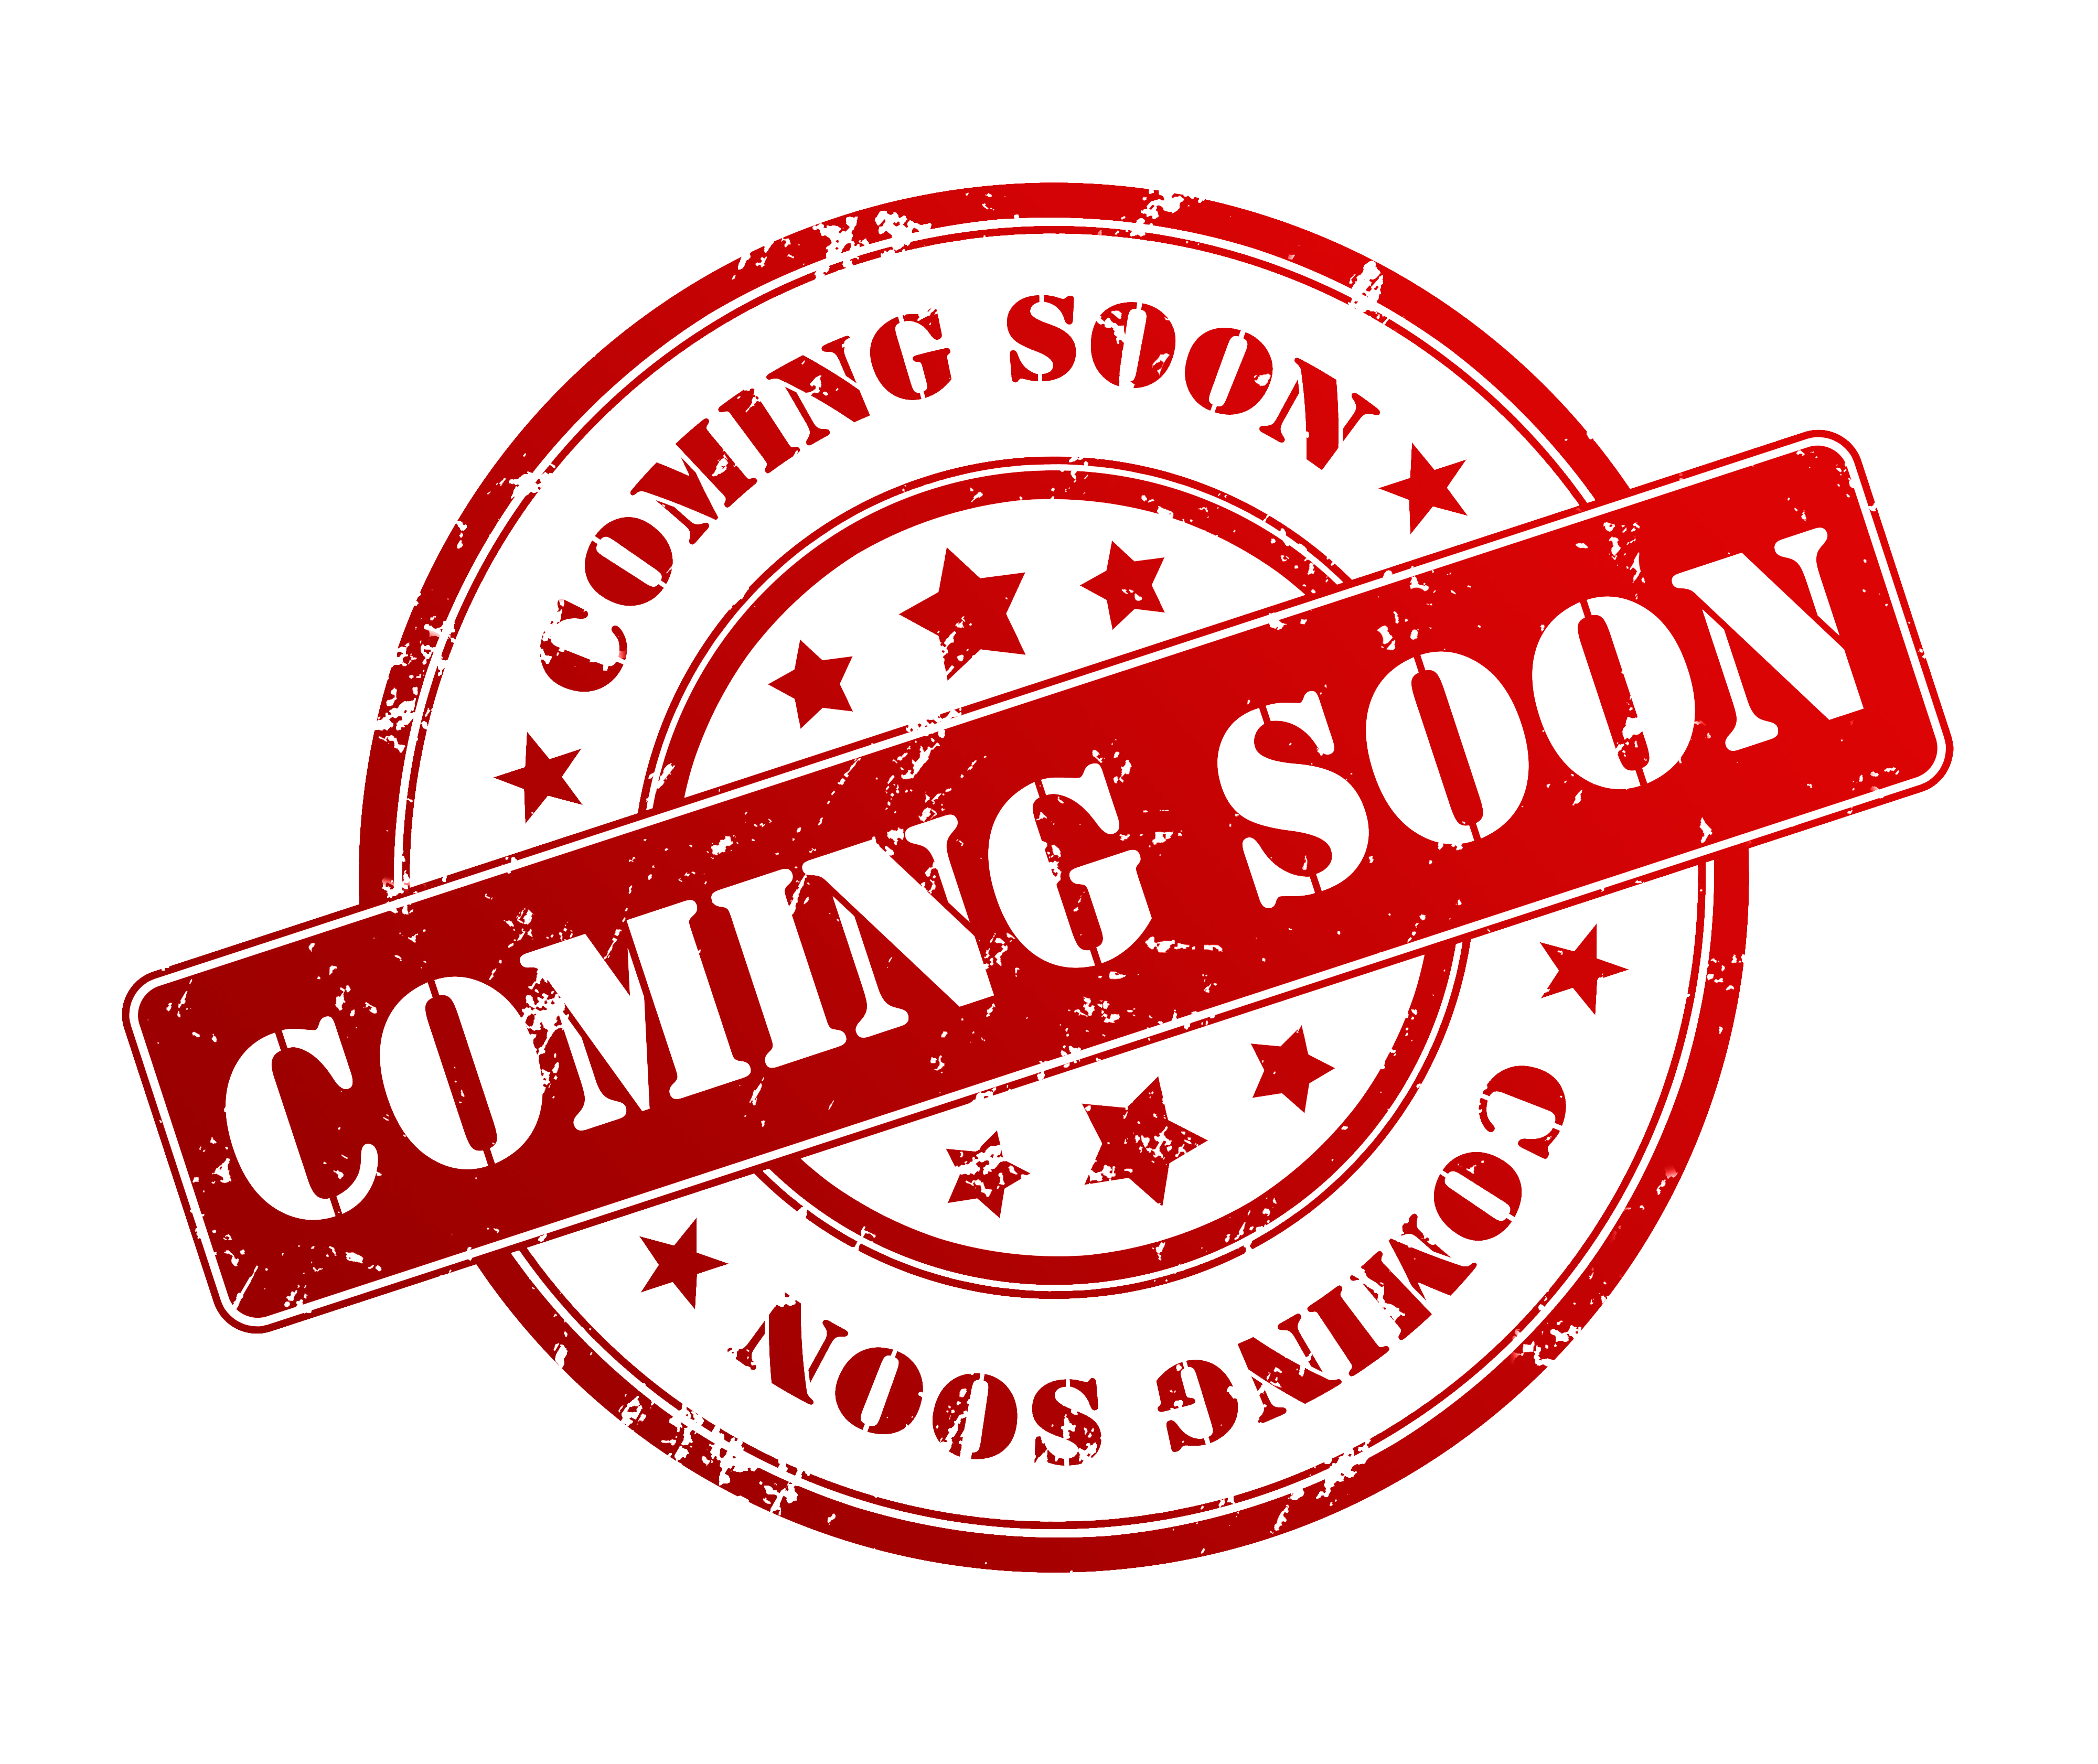 Coming soon sign png. Transparent images pluspng about